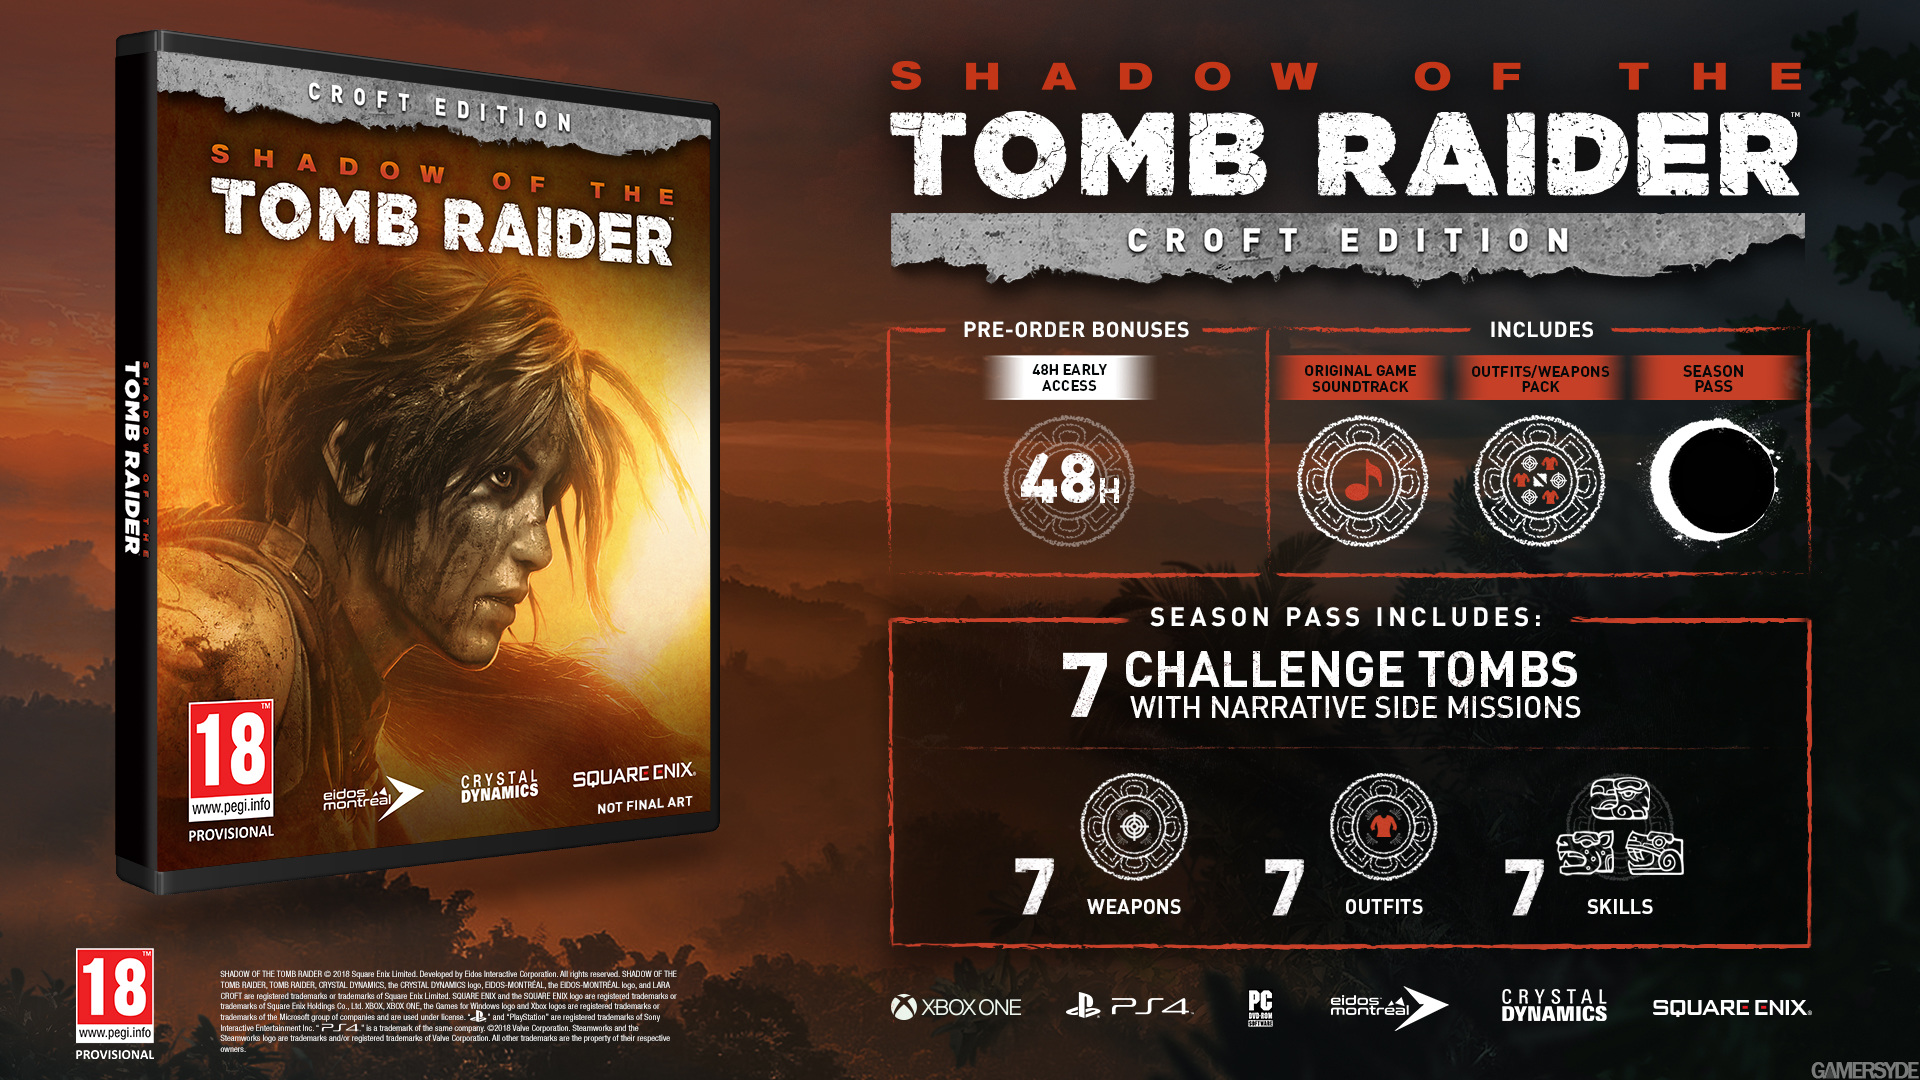 image_shadow_of_the_tomb_raider-38091-40